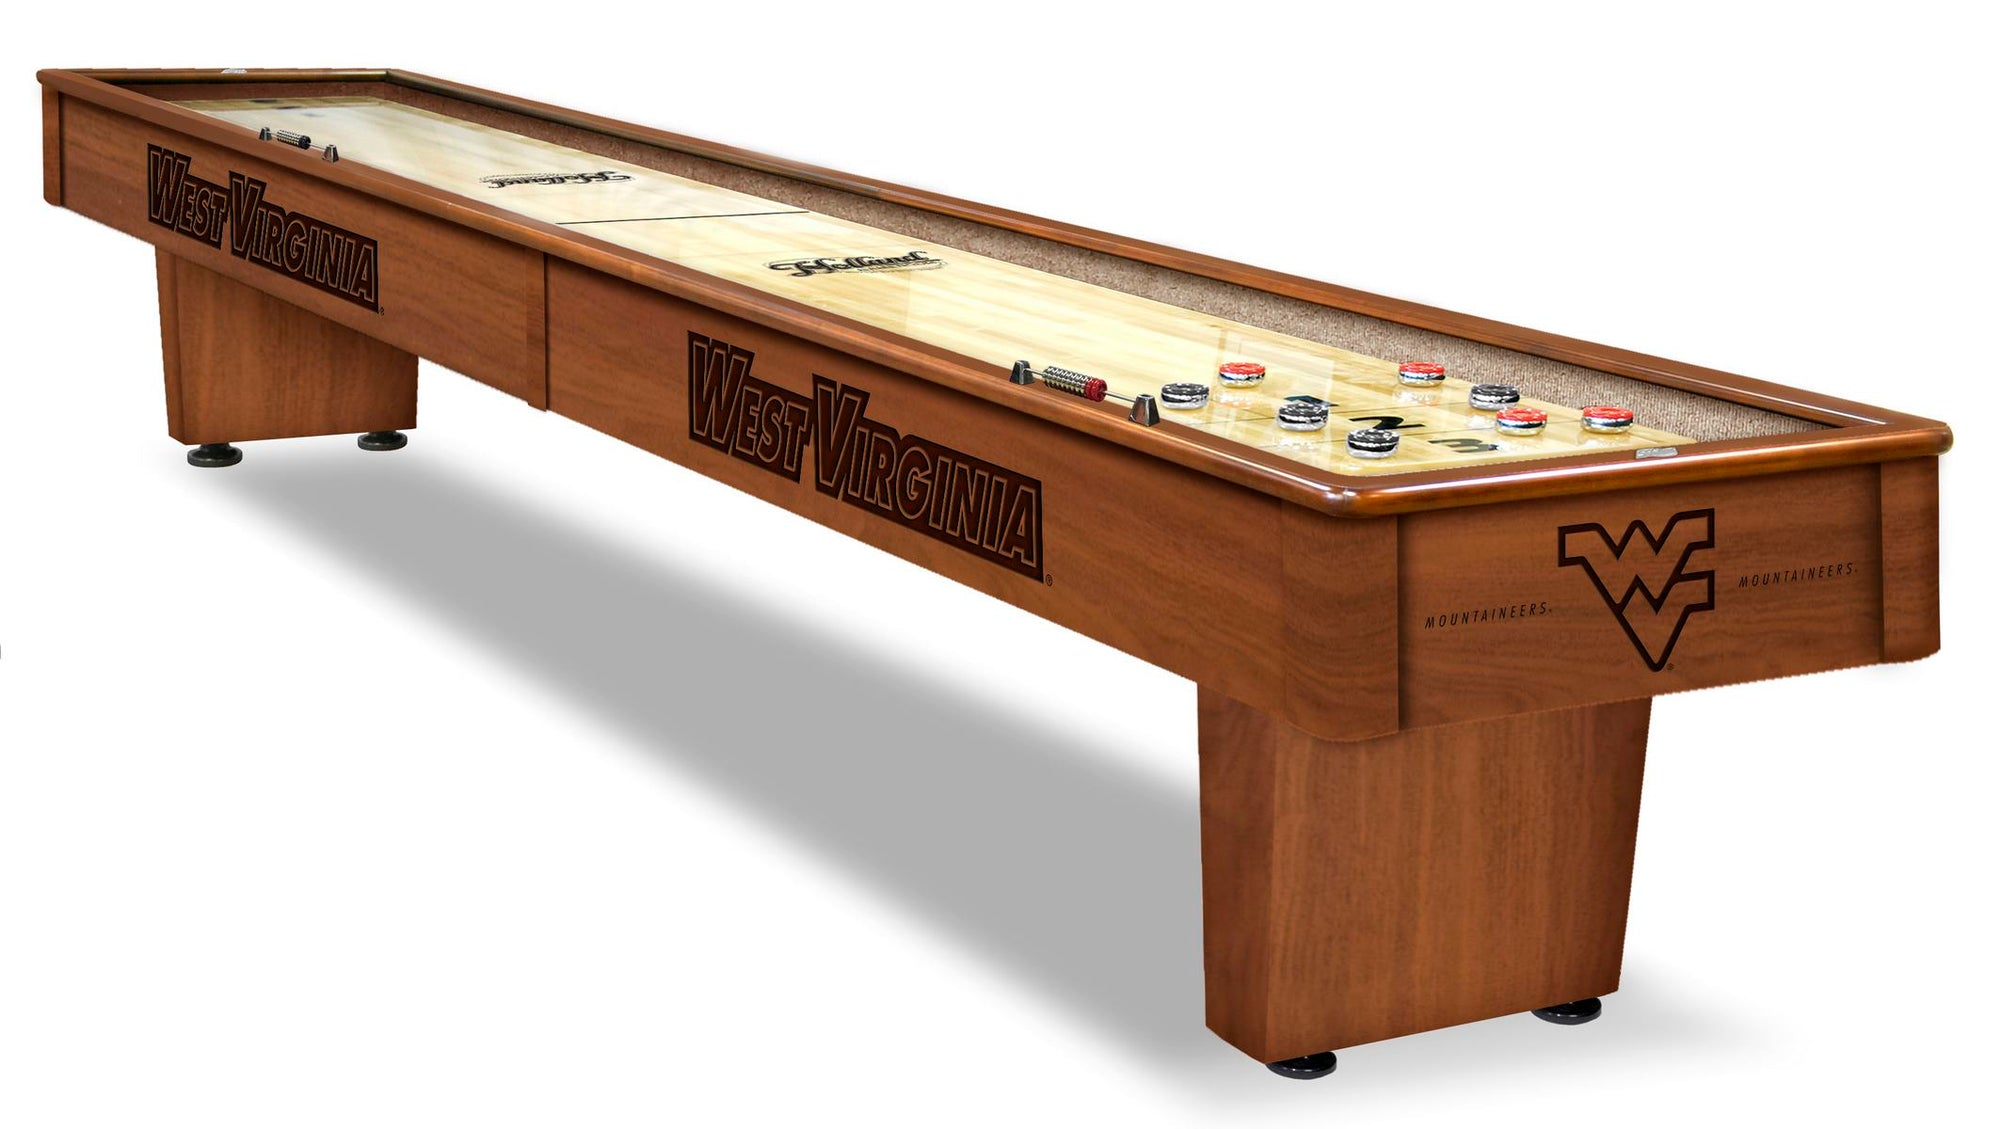 West Virginia University Shuffleboard Table